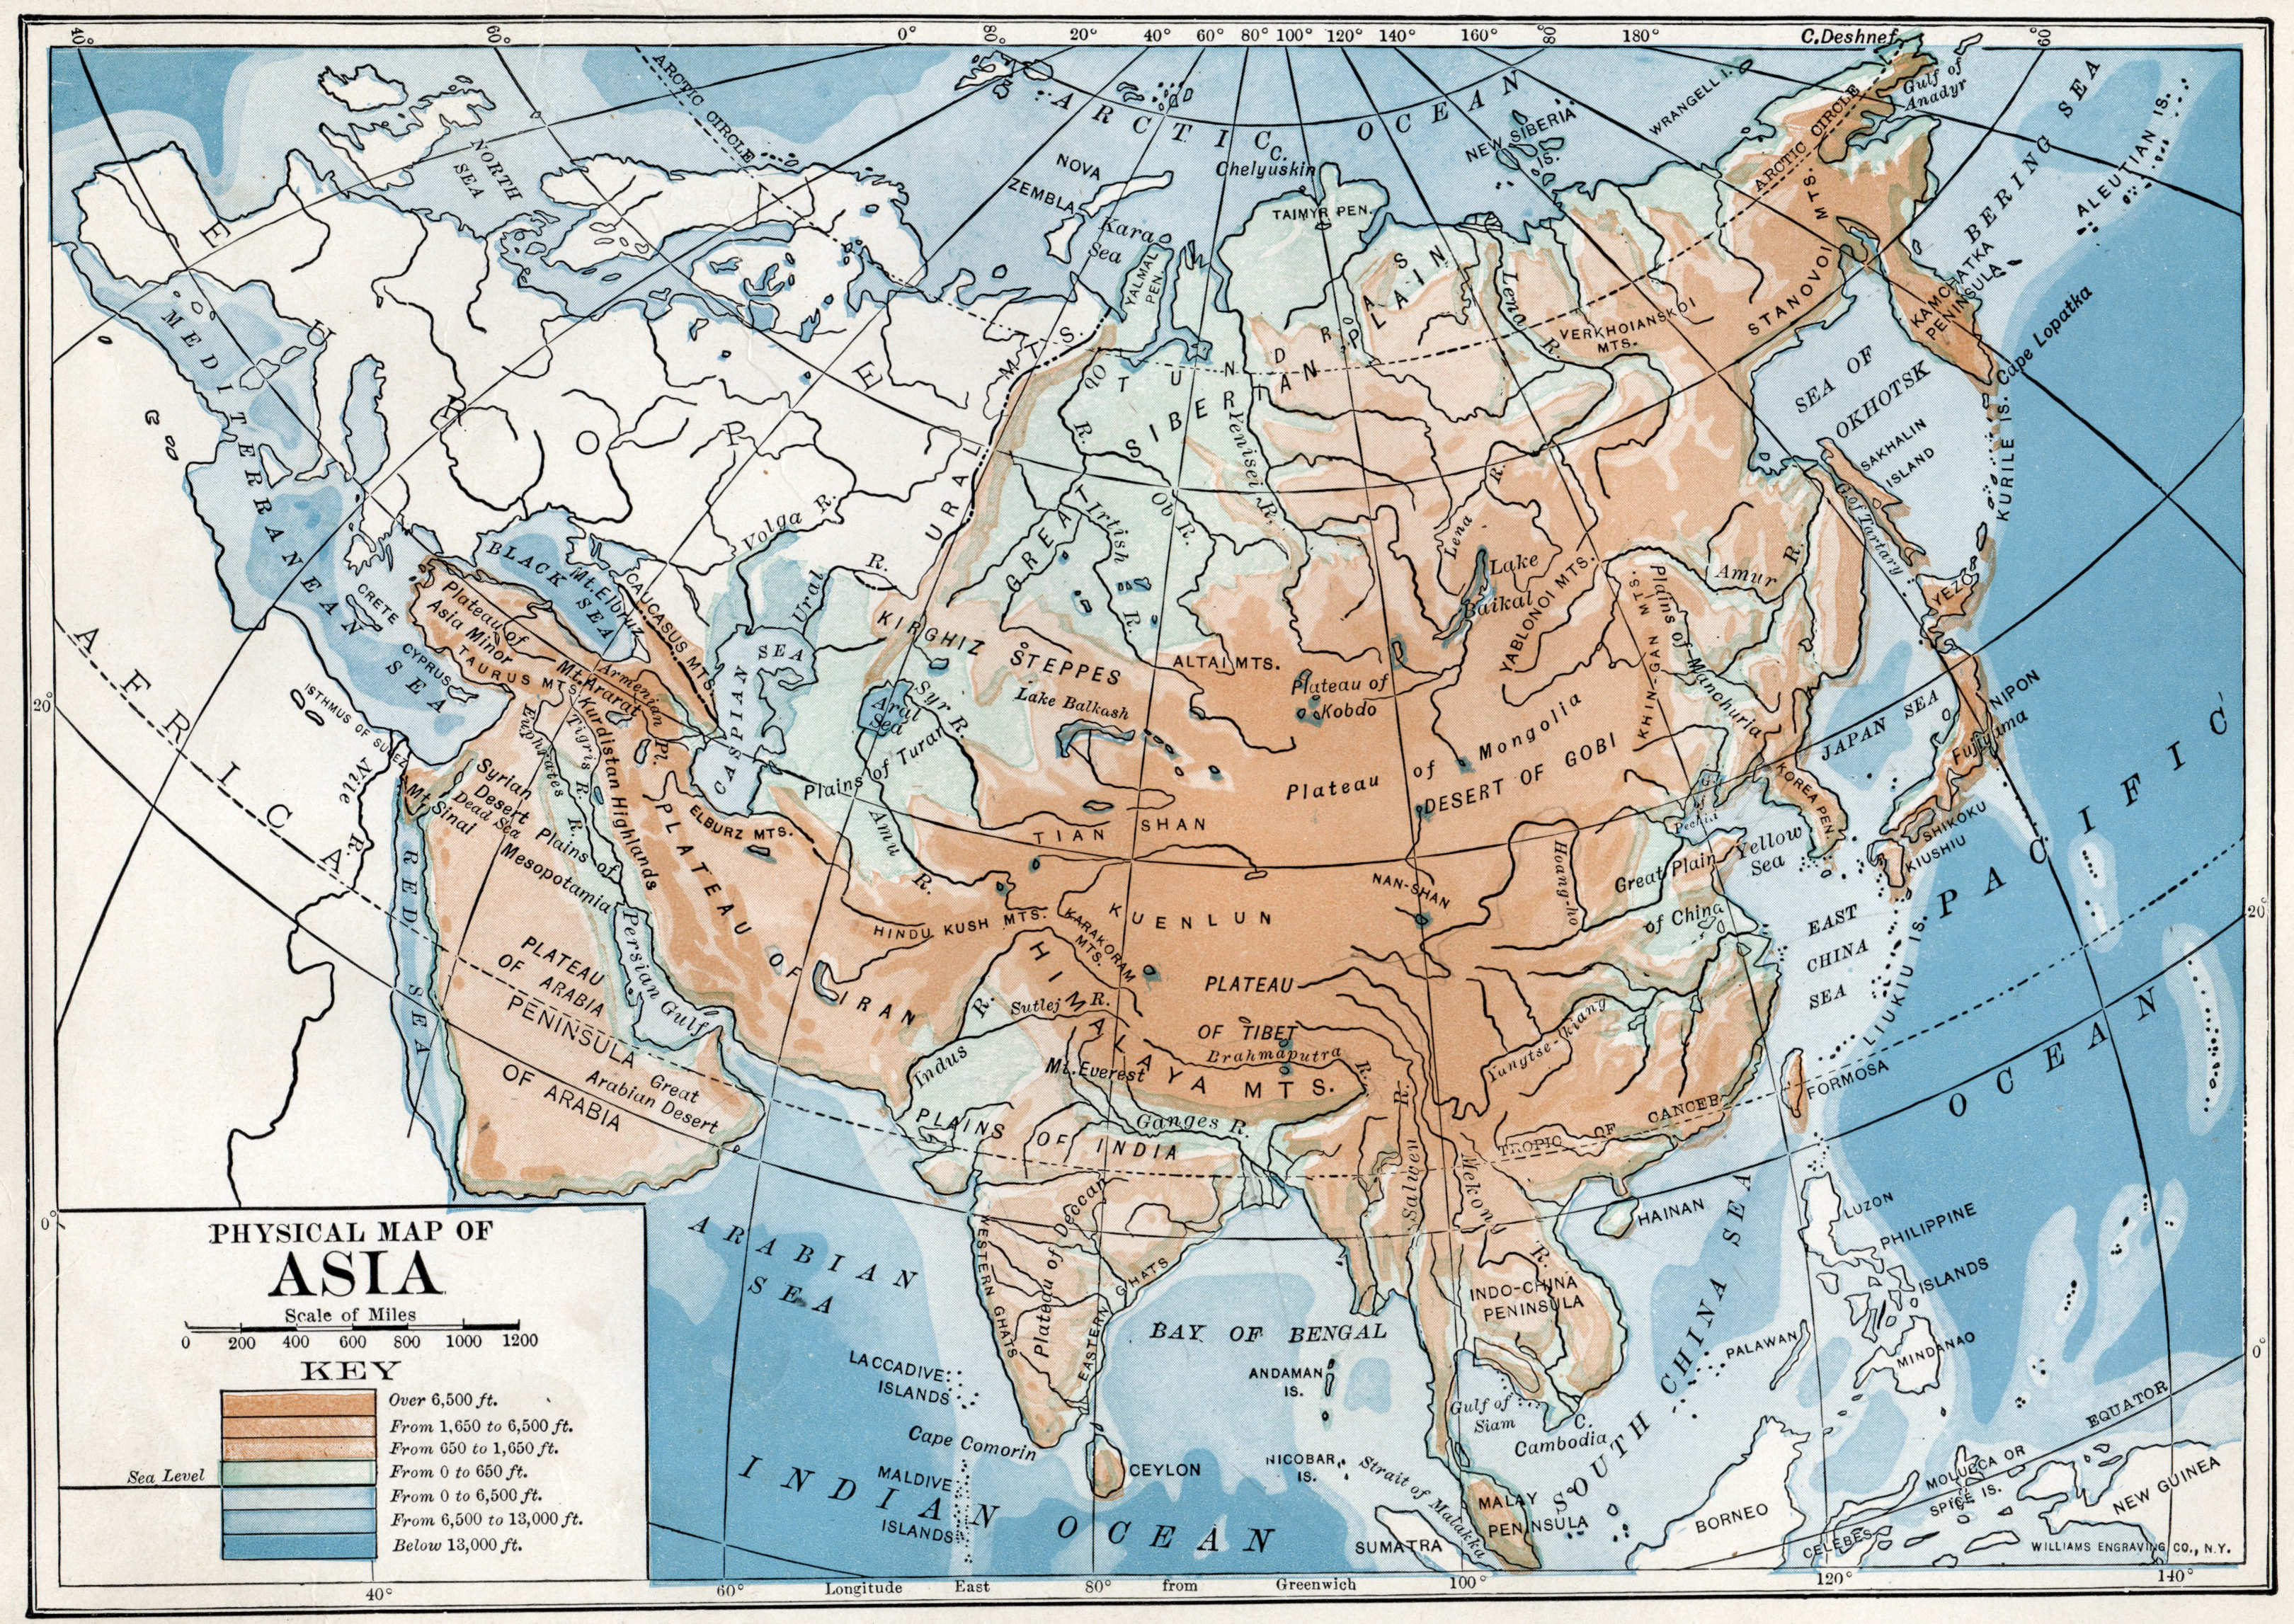 Physical Map Of Asia With Labels.File 1916 Physical Map Of Asia Jpg Wikimedia Commons